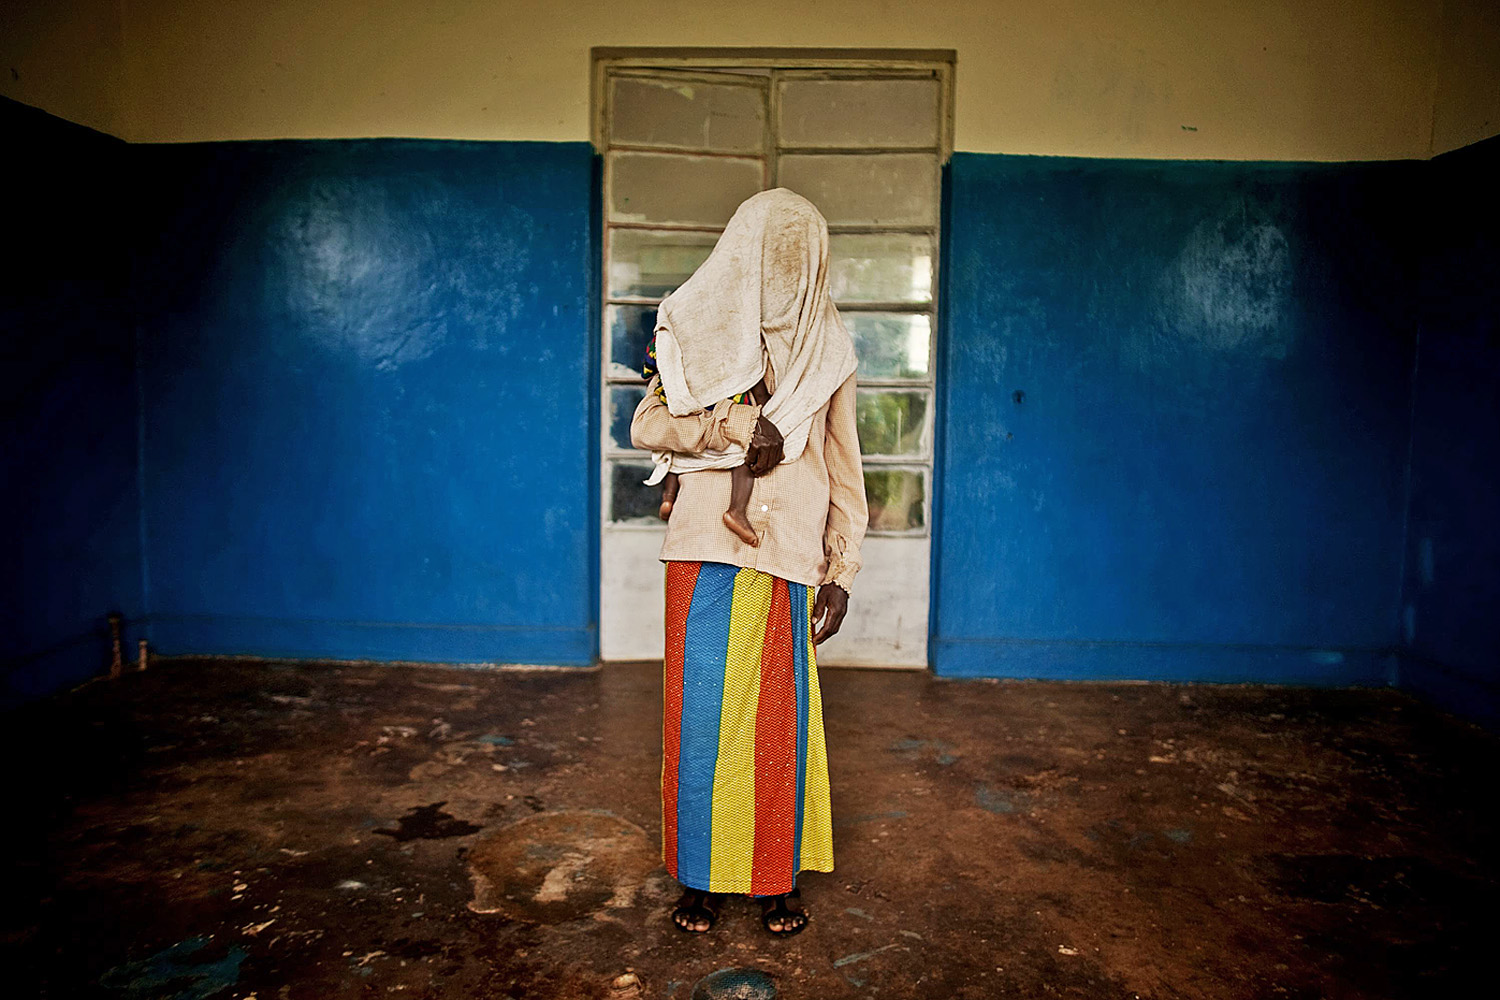 February 20, 2011. A victim of a mass rape campaign in the town of Fizi, Democratic Republic of Congo. Her identity has been concealed for security reasons and because rape carries strong social stigma in the nation.